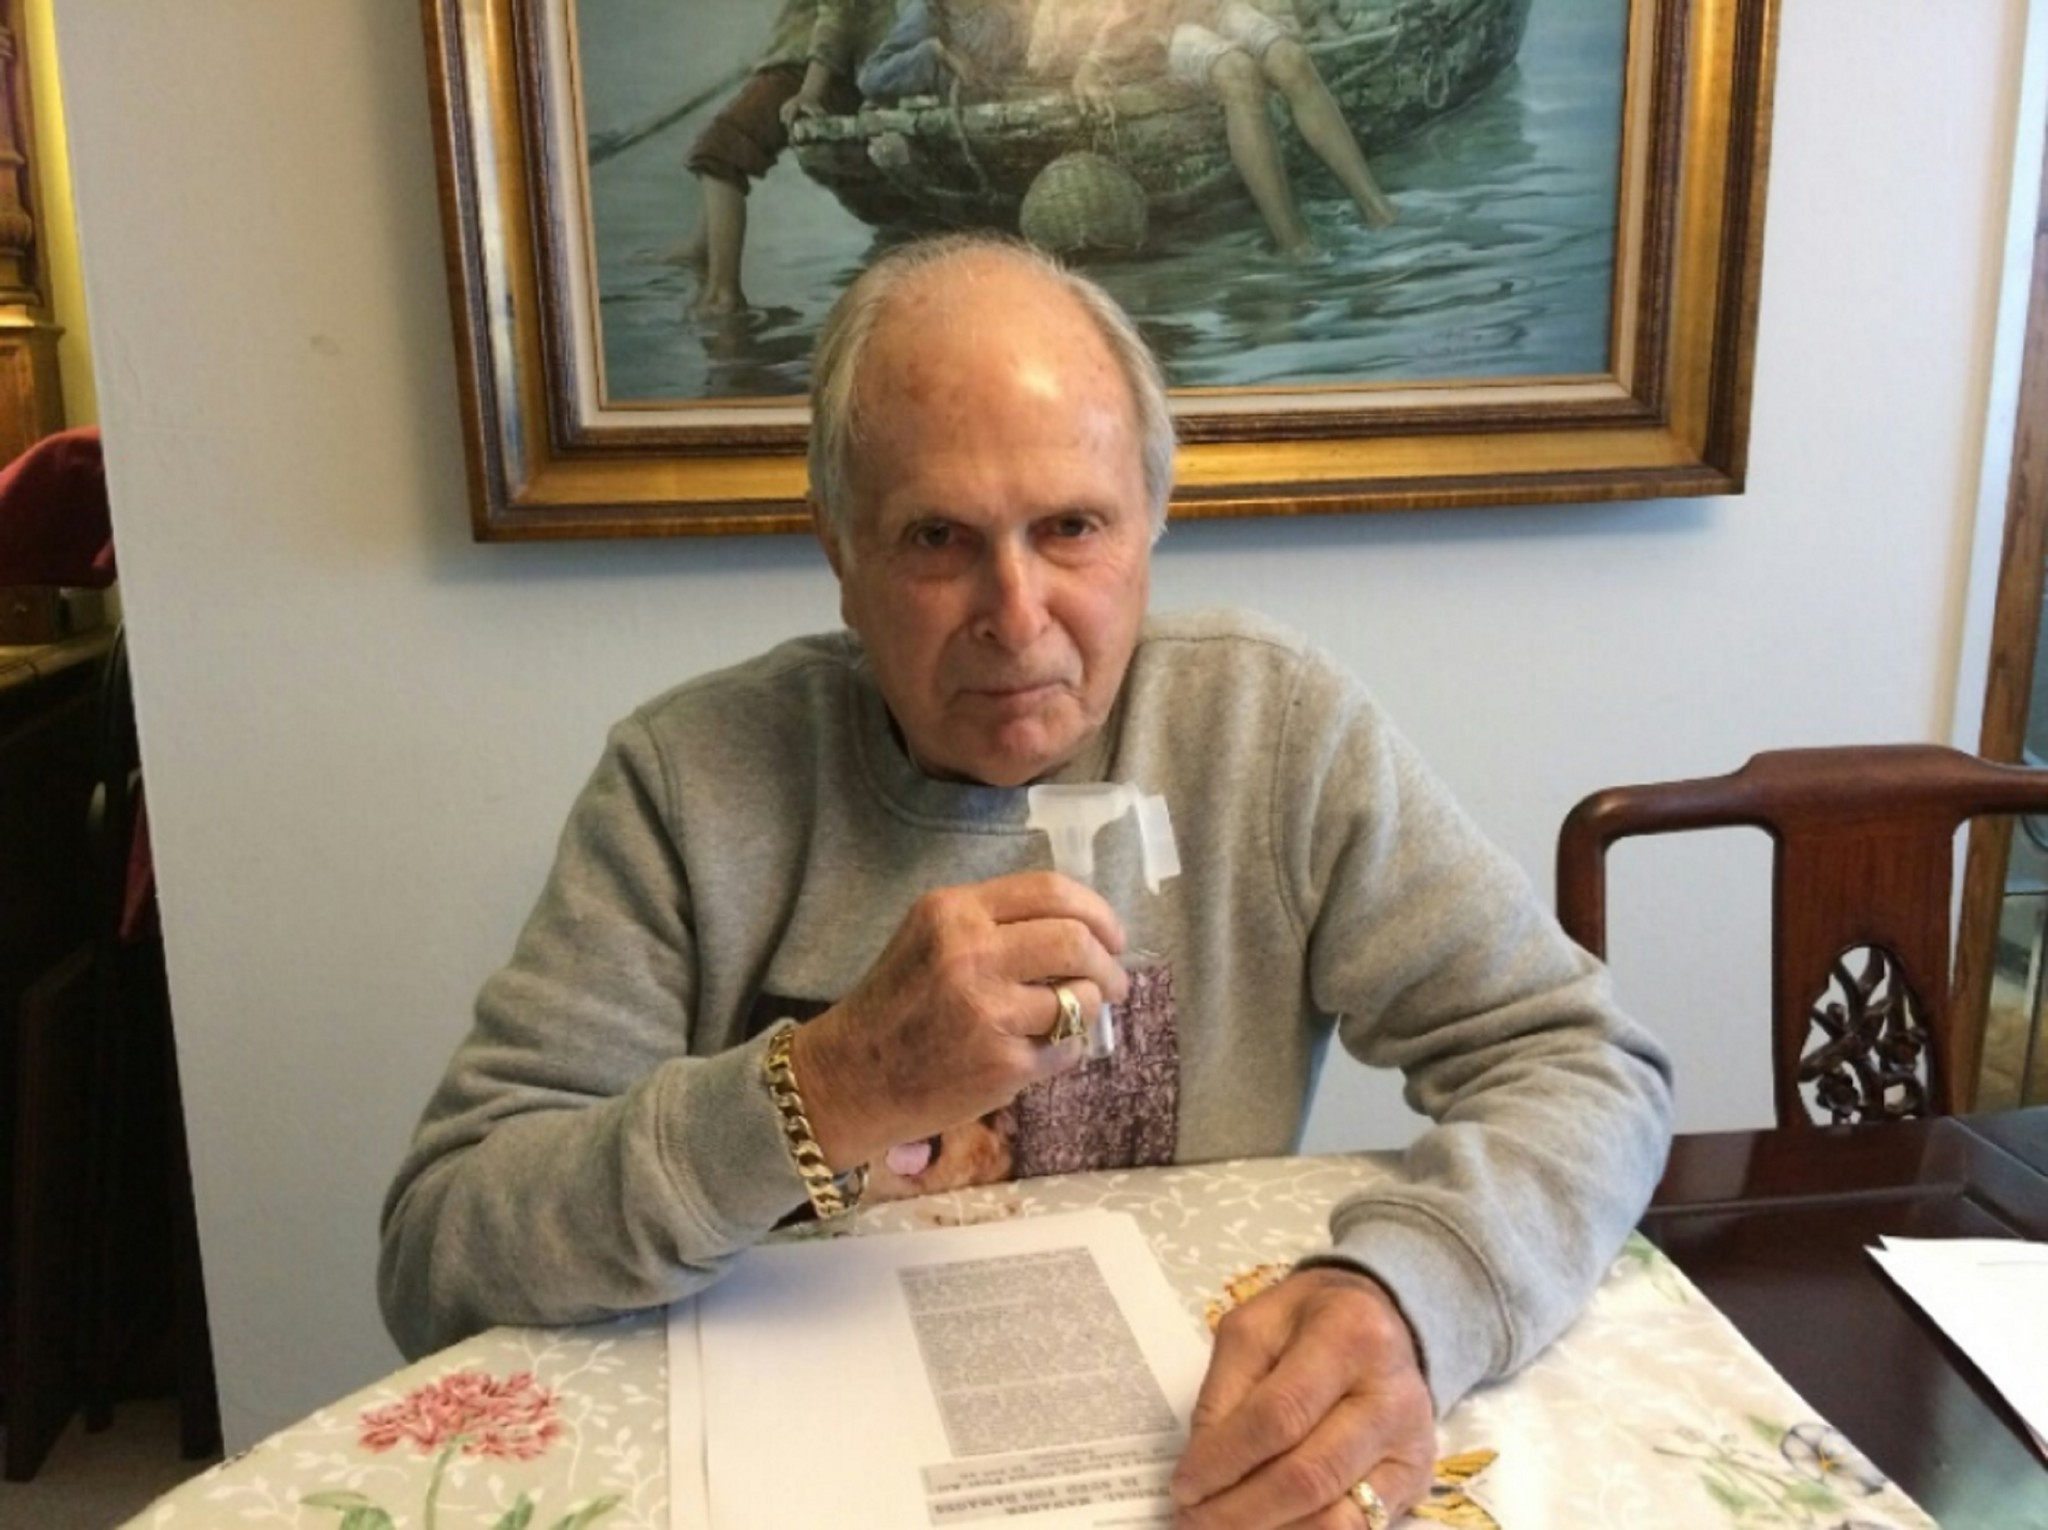 Peter Cook, 82, of San Rafael, submits saliva for a DNA test in 2016.